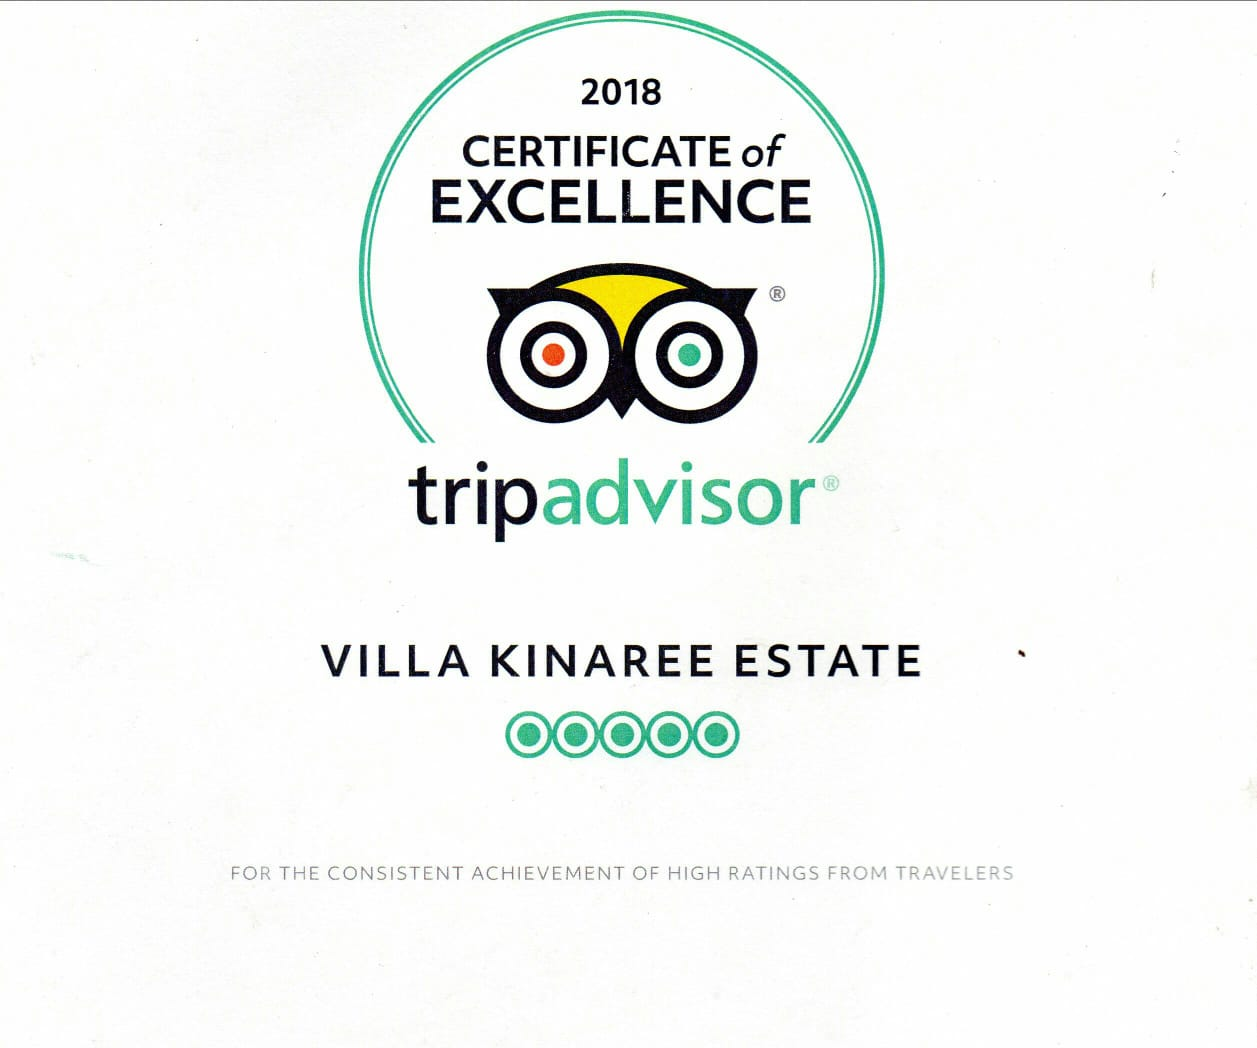 Villa Kinaree Estate: TripAdvisor Certificate of Excellence for 2018